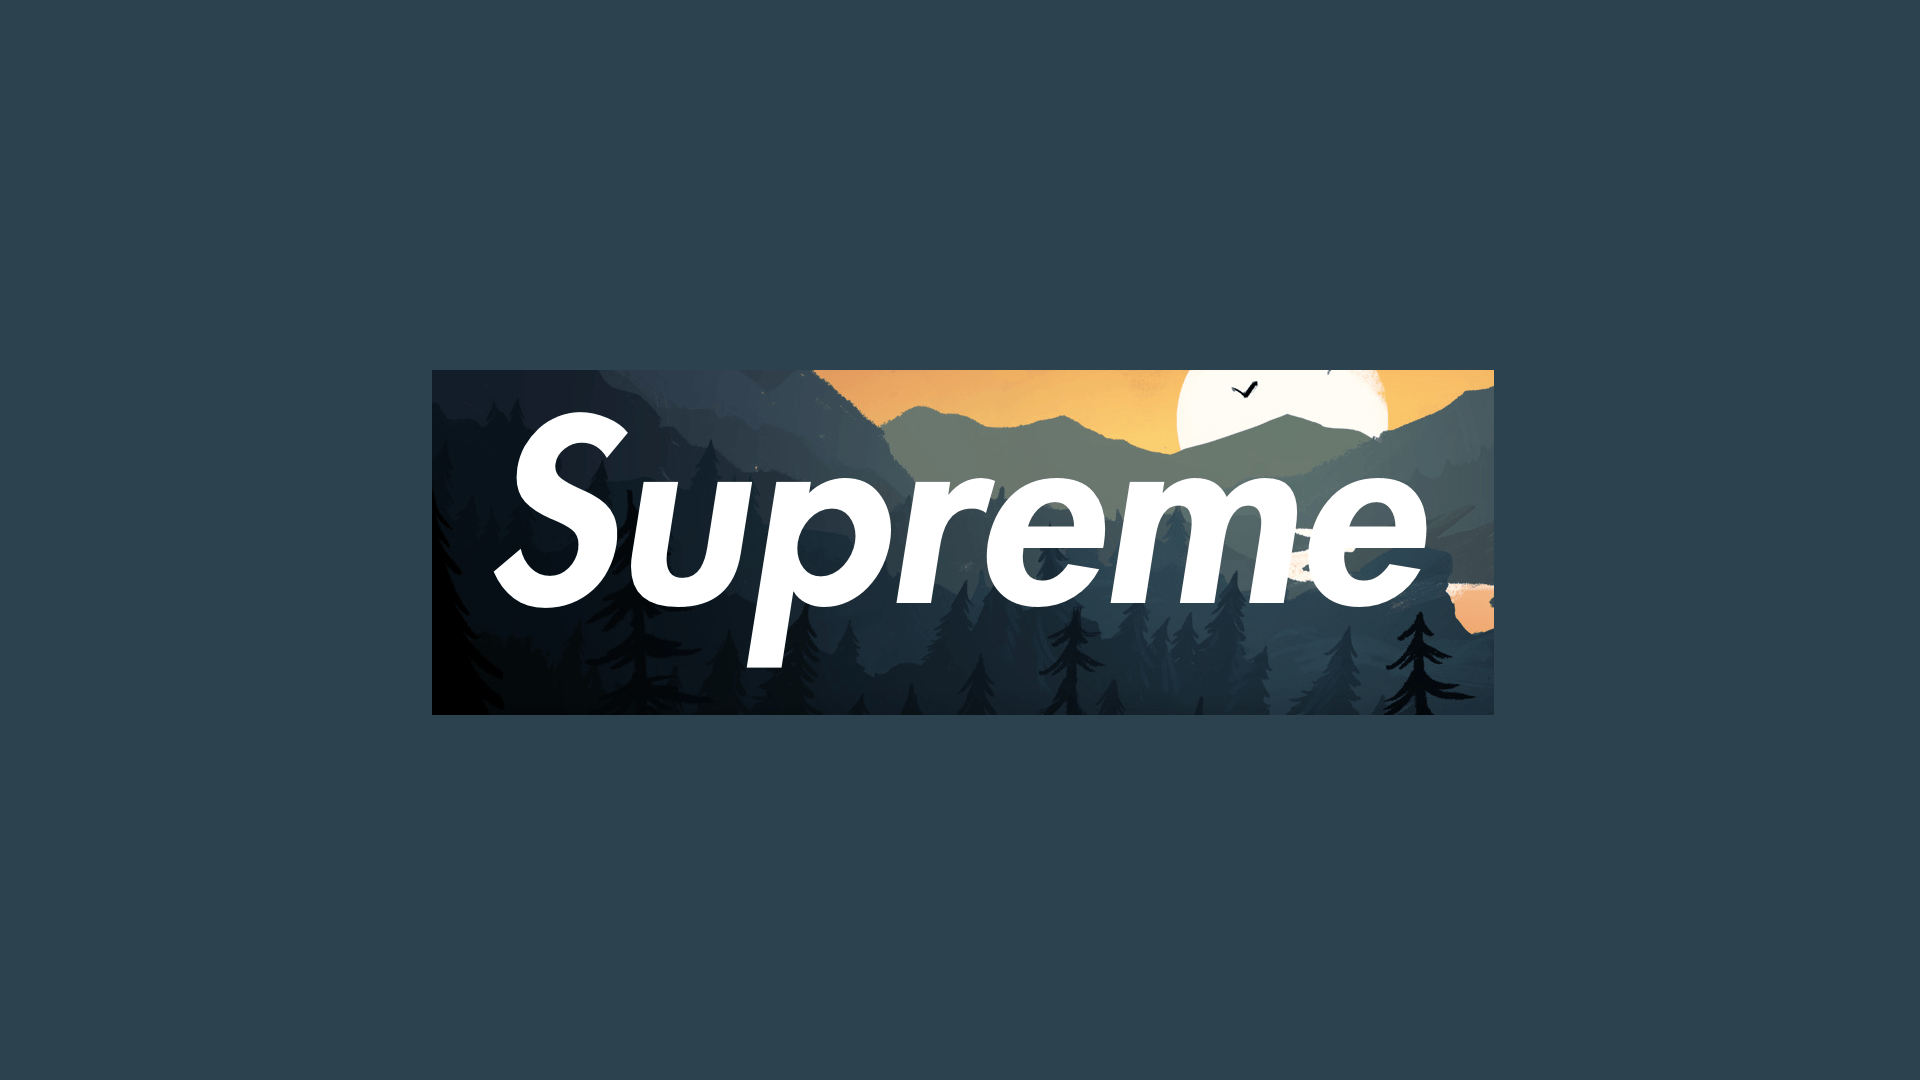 1920x1080 Supreme x Firewatch 1920x1080 | Reddit HD Wallpapers | Pinterest ...